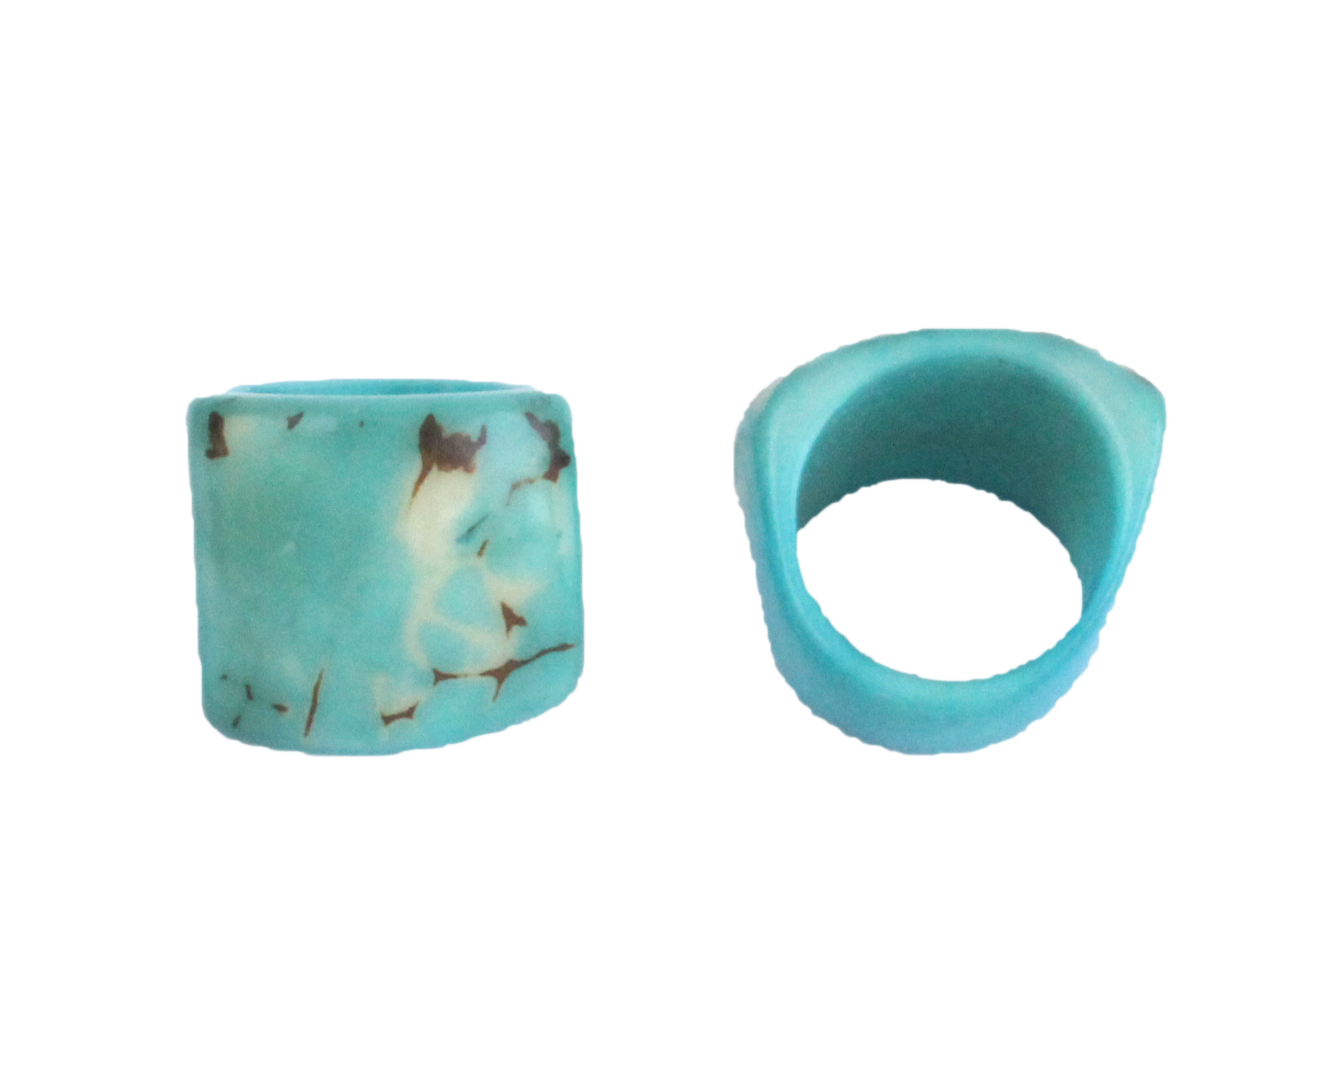 Handmade ring, tagua, US size 6 or 7, turquoise, back